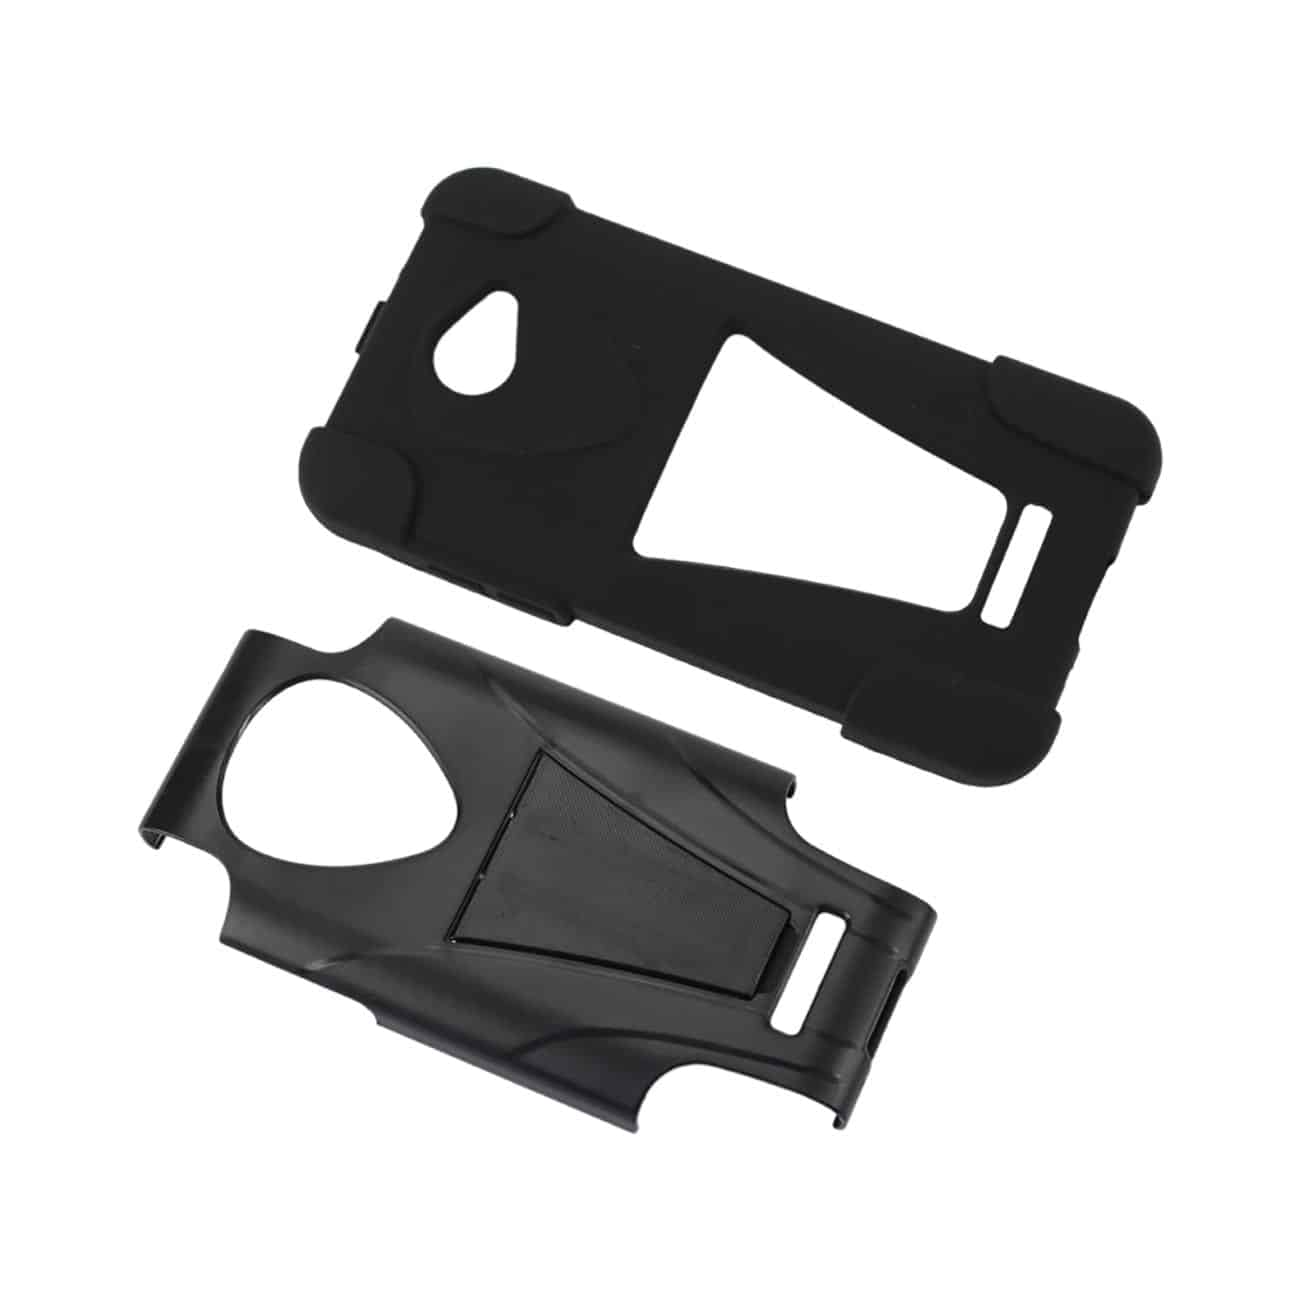 HTC DROID DNA HYBRID HEAVY DUTY CASE WITH KICKSTAND IN BLACK